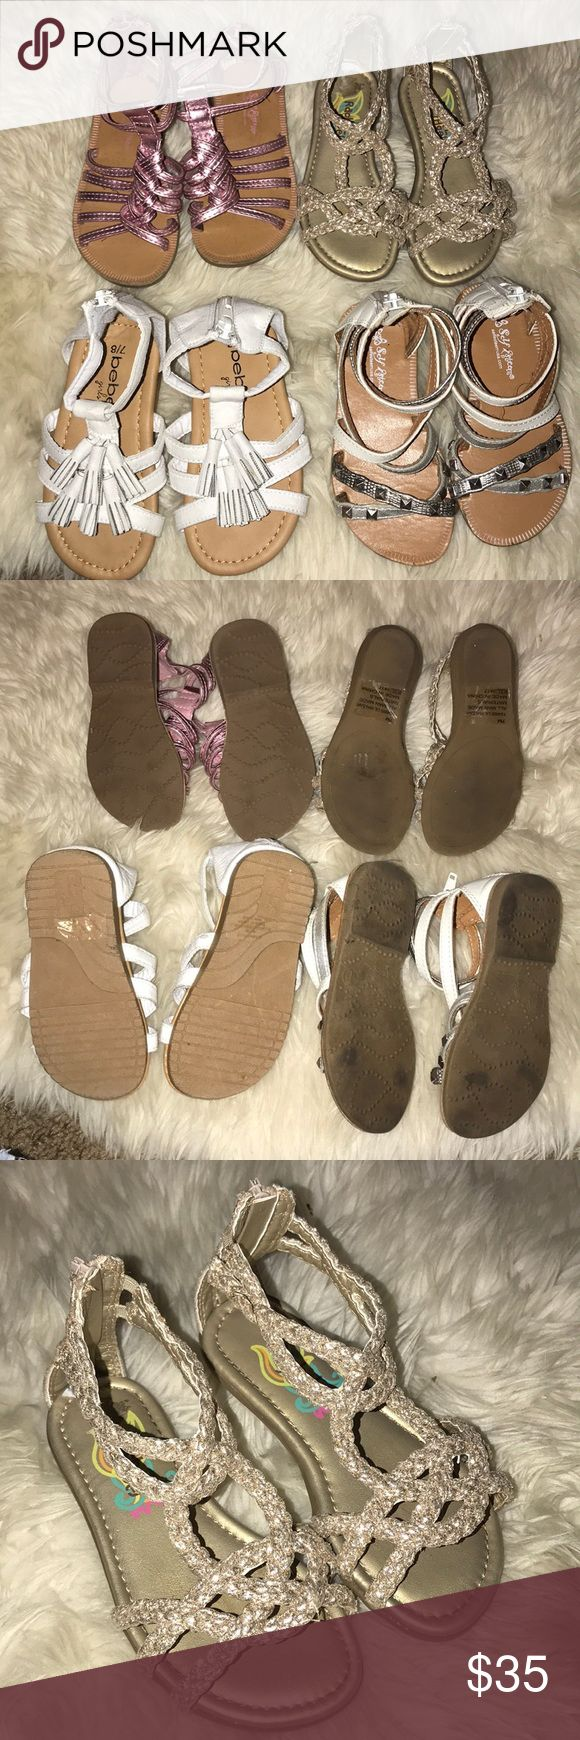 Lot of 4 toddler sandals size 7 Lot of four toddler sandals all size 7. The bebe ones have never been worn, brand new. The other ones are lightly worn and in great shape. They are all so adorable, steal of a deal for your princess! bebe Shoes Sandals & Flip Flops